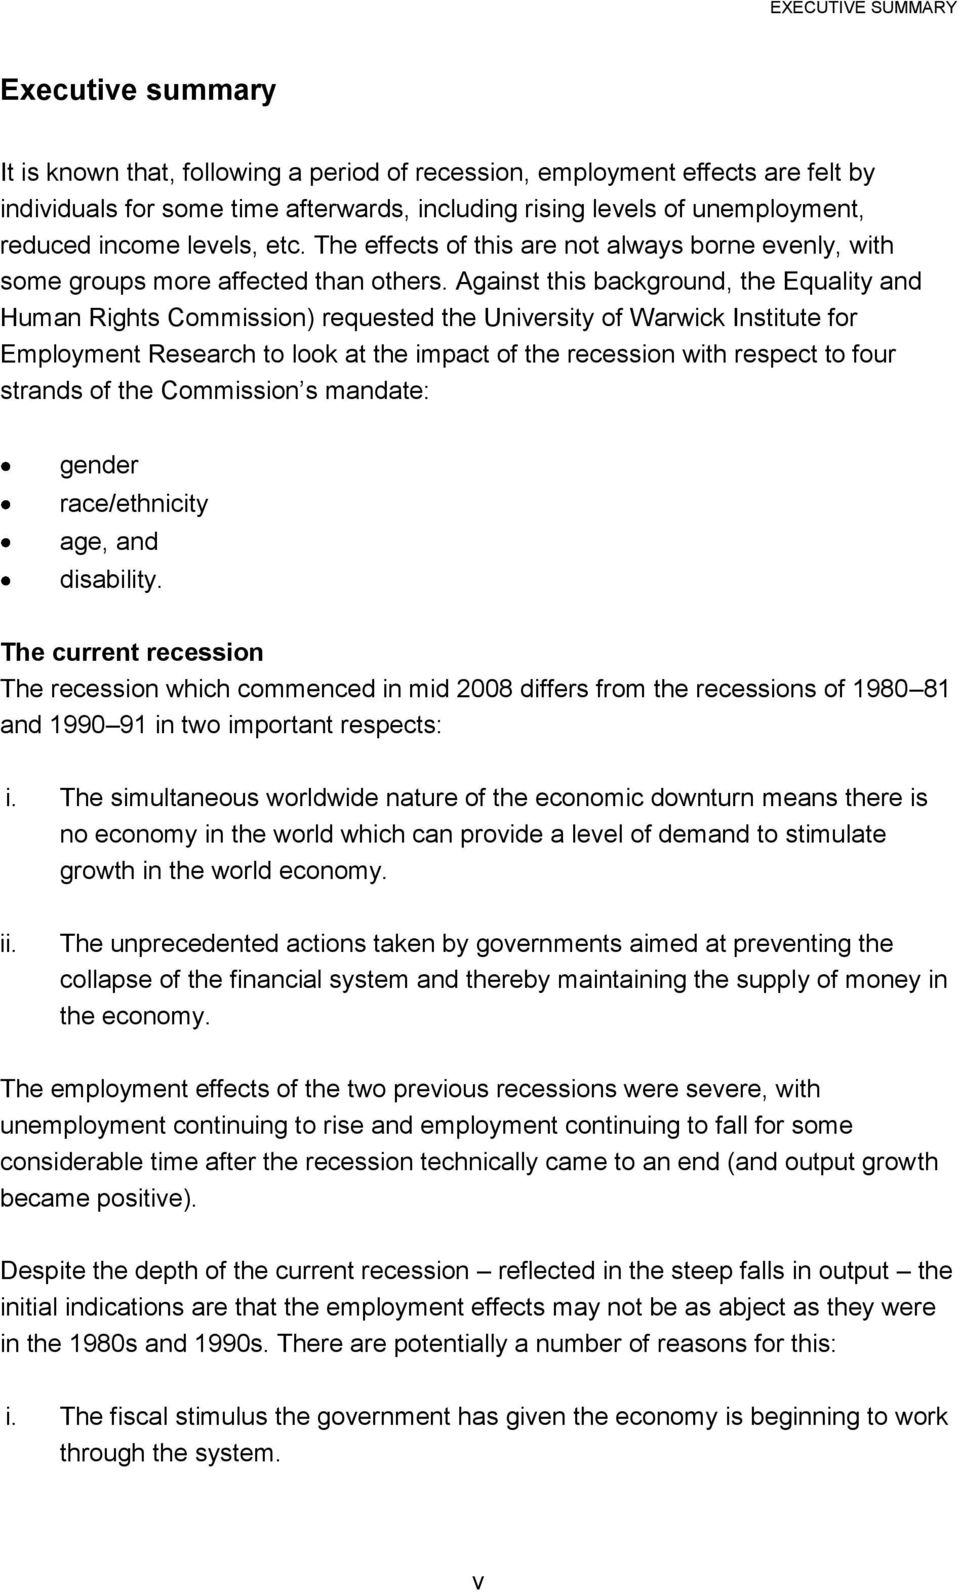 Against this background, the Equality and Human Rights Commission) requested the University of Warwick Institute for Employment Research to look at the impact of the recession with respect to four